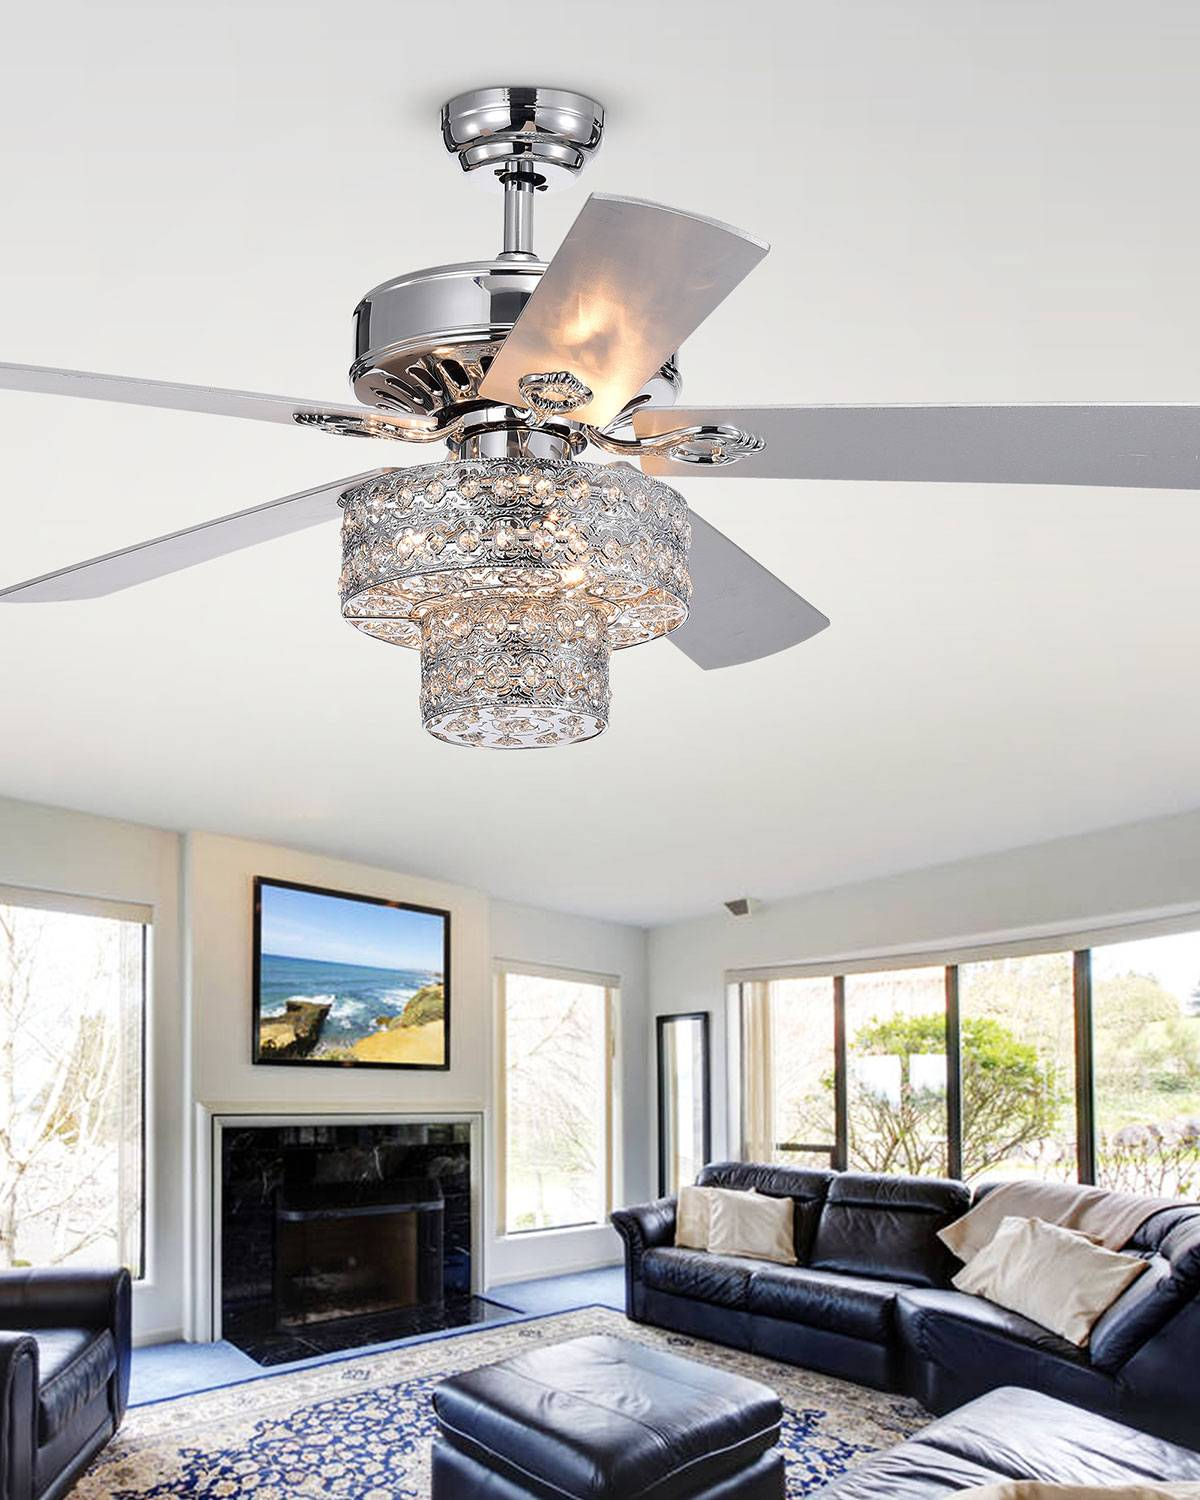 Home Accessories Two-Tier Embedded Crystal Chandelier Ceiling Fan